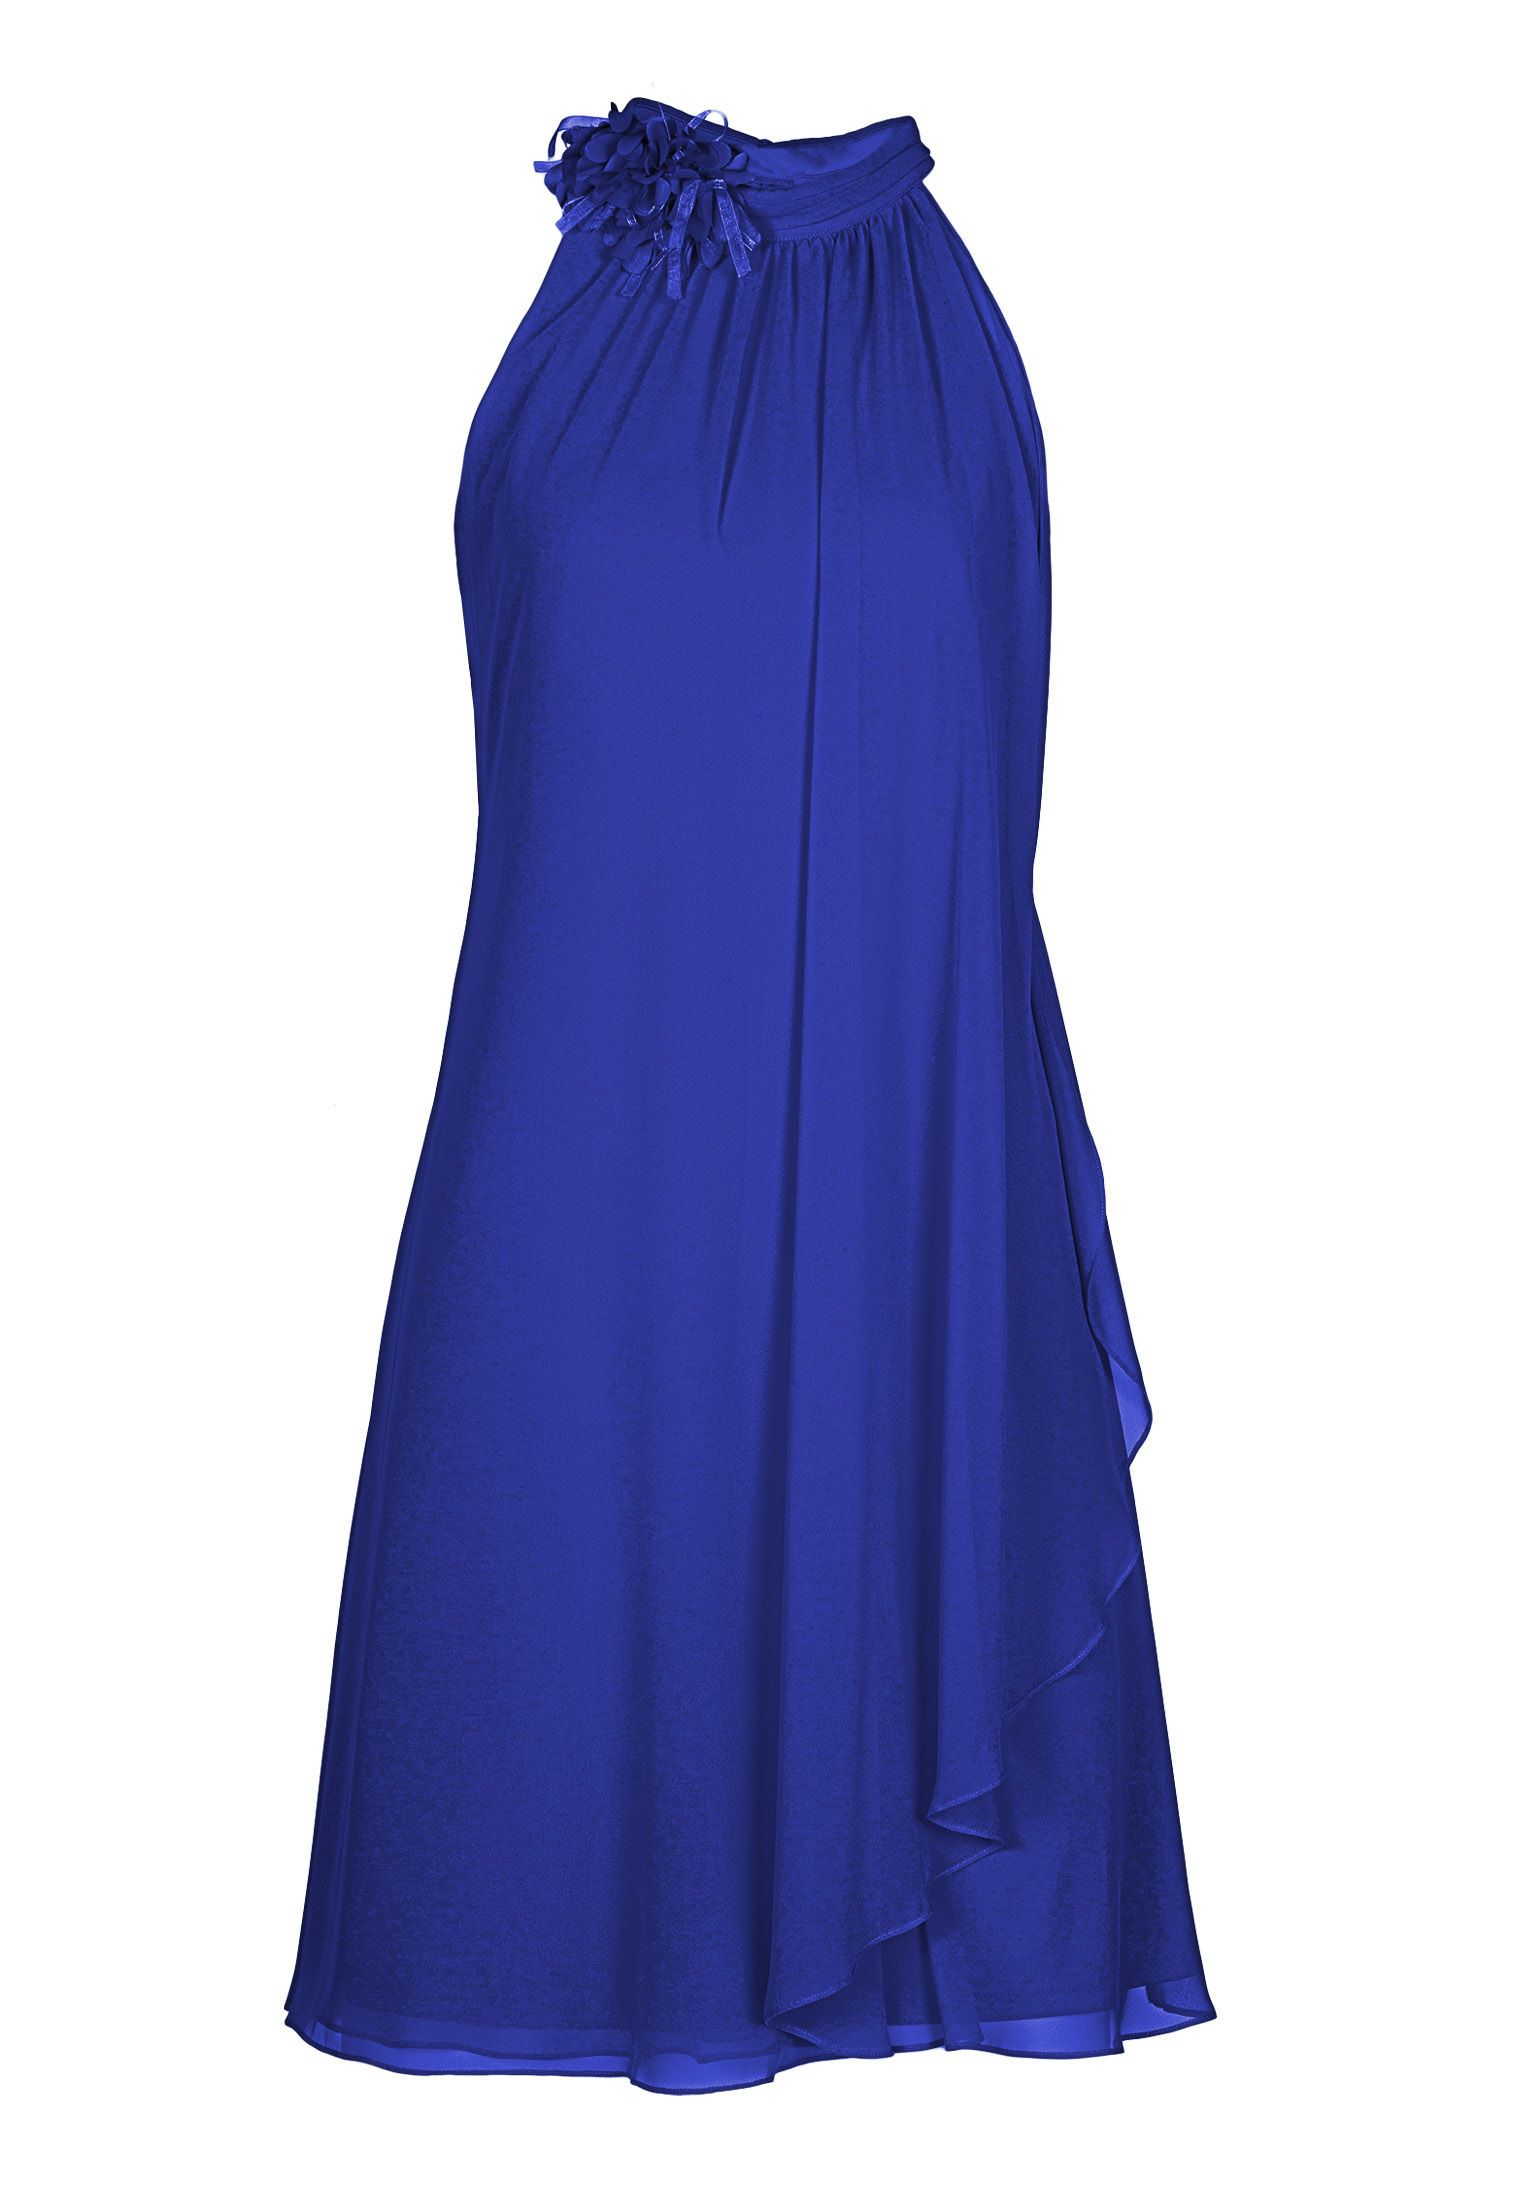 Vera Mont - Cocktailkleid in Blau | Abendkleidung | Pinterest | Clothes